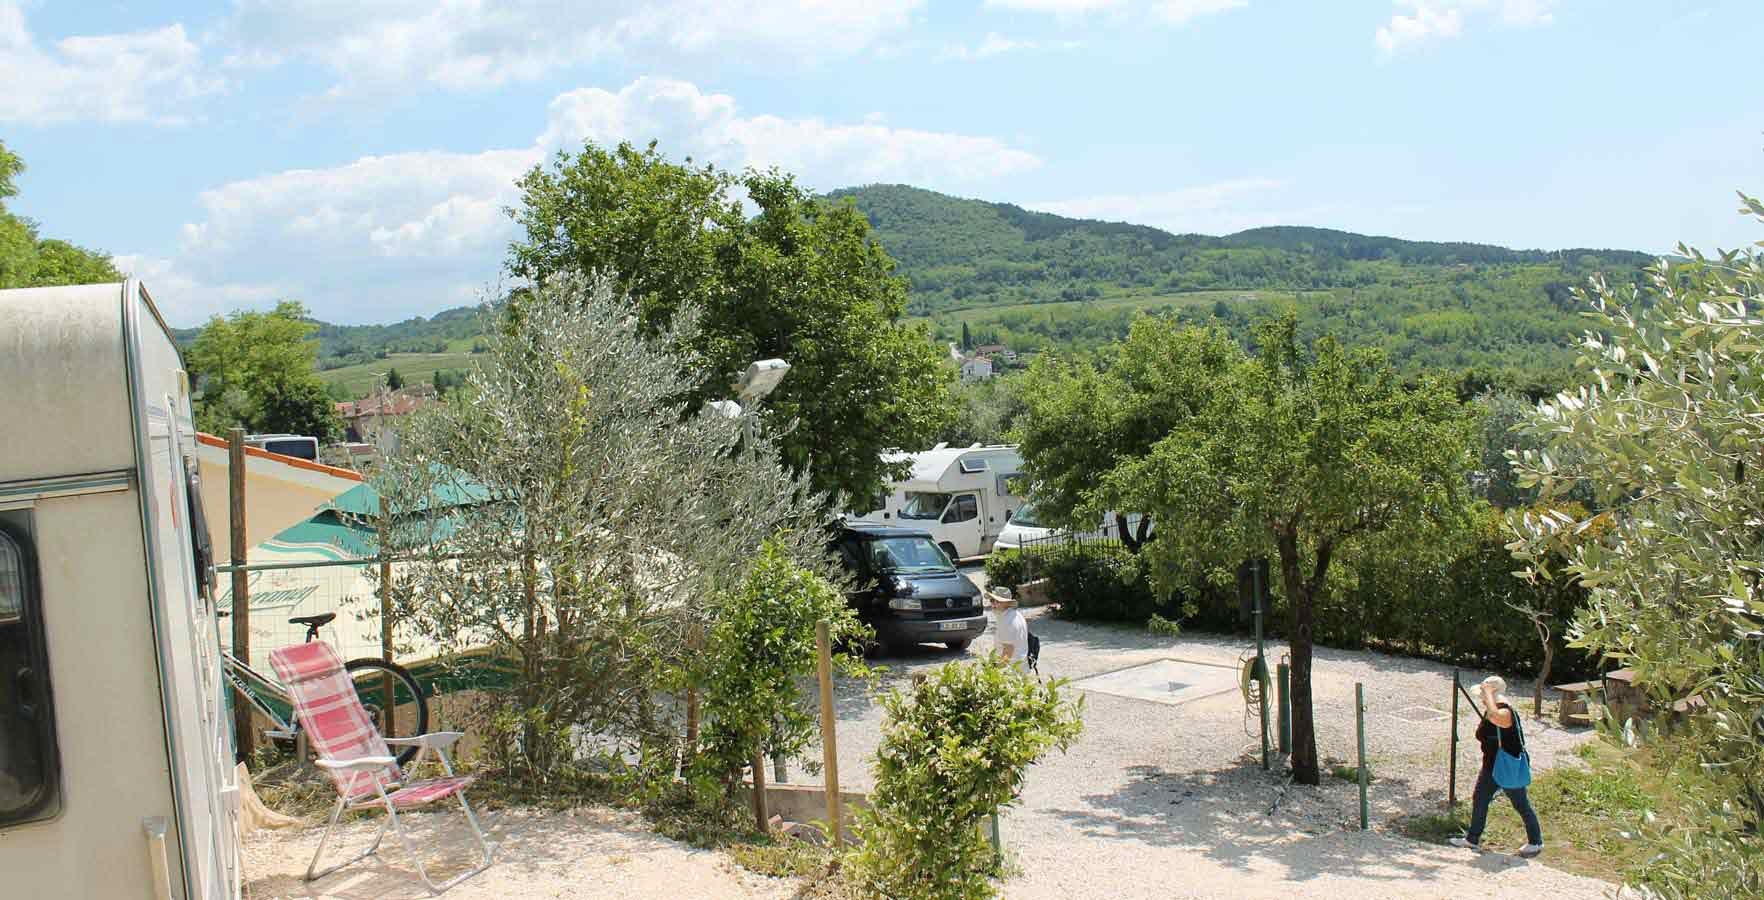 Camper stop Motovun - camping in the shade